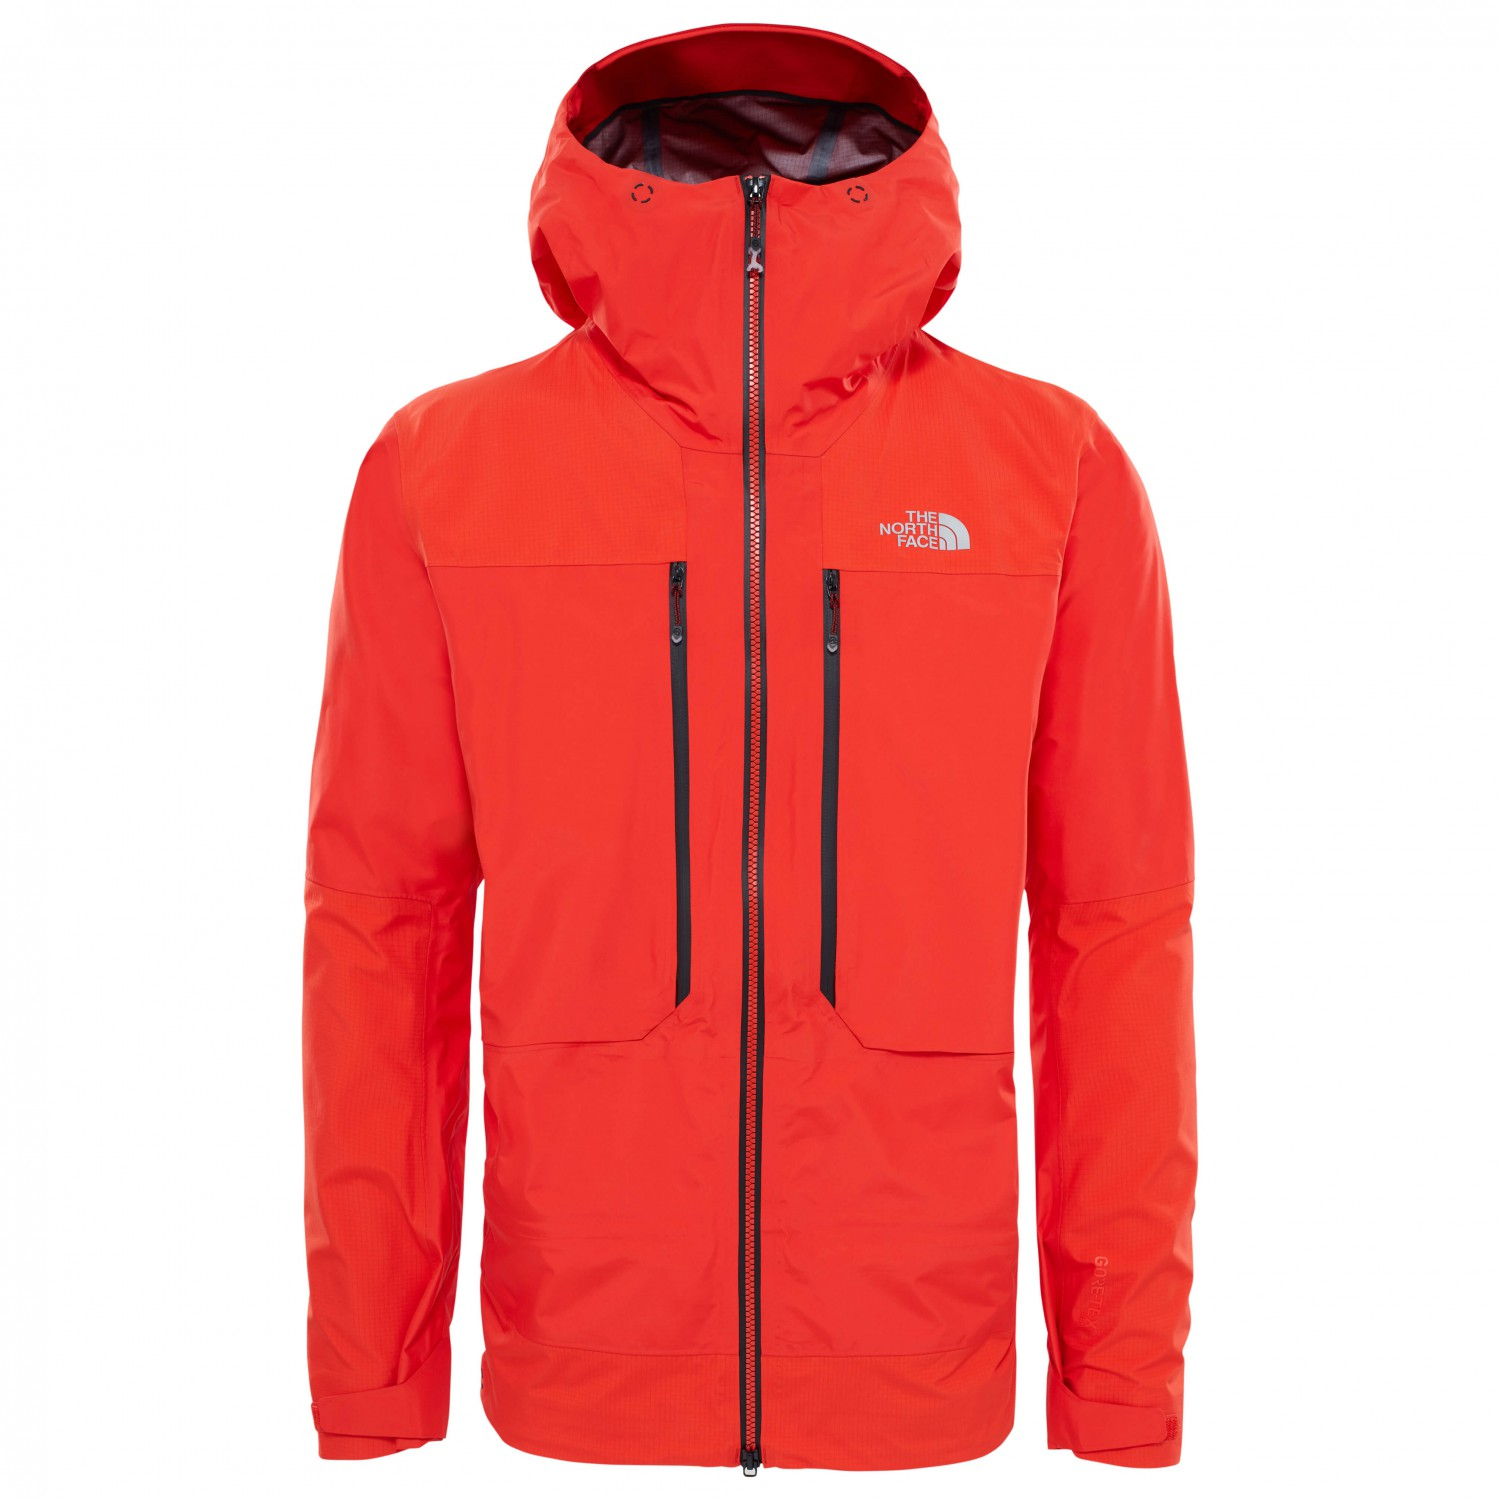 29d479e5e The North Face Summit L5 Gore-Tex Pro Jacket - Waterproof Jacket ...